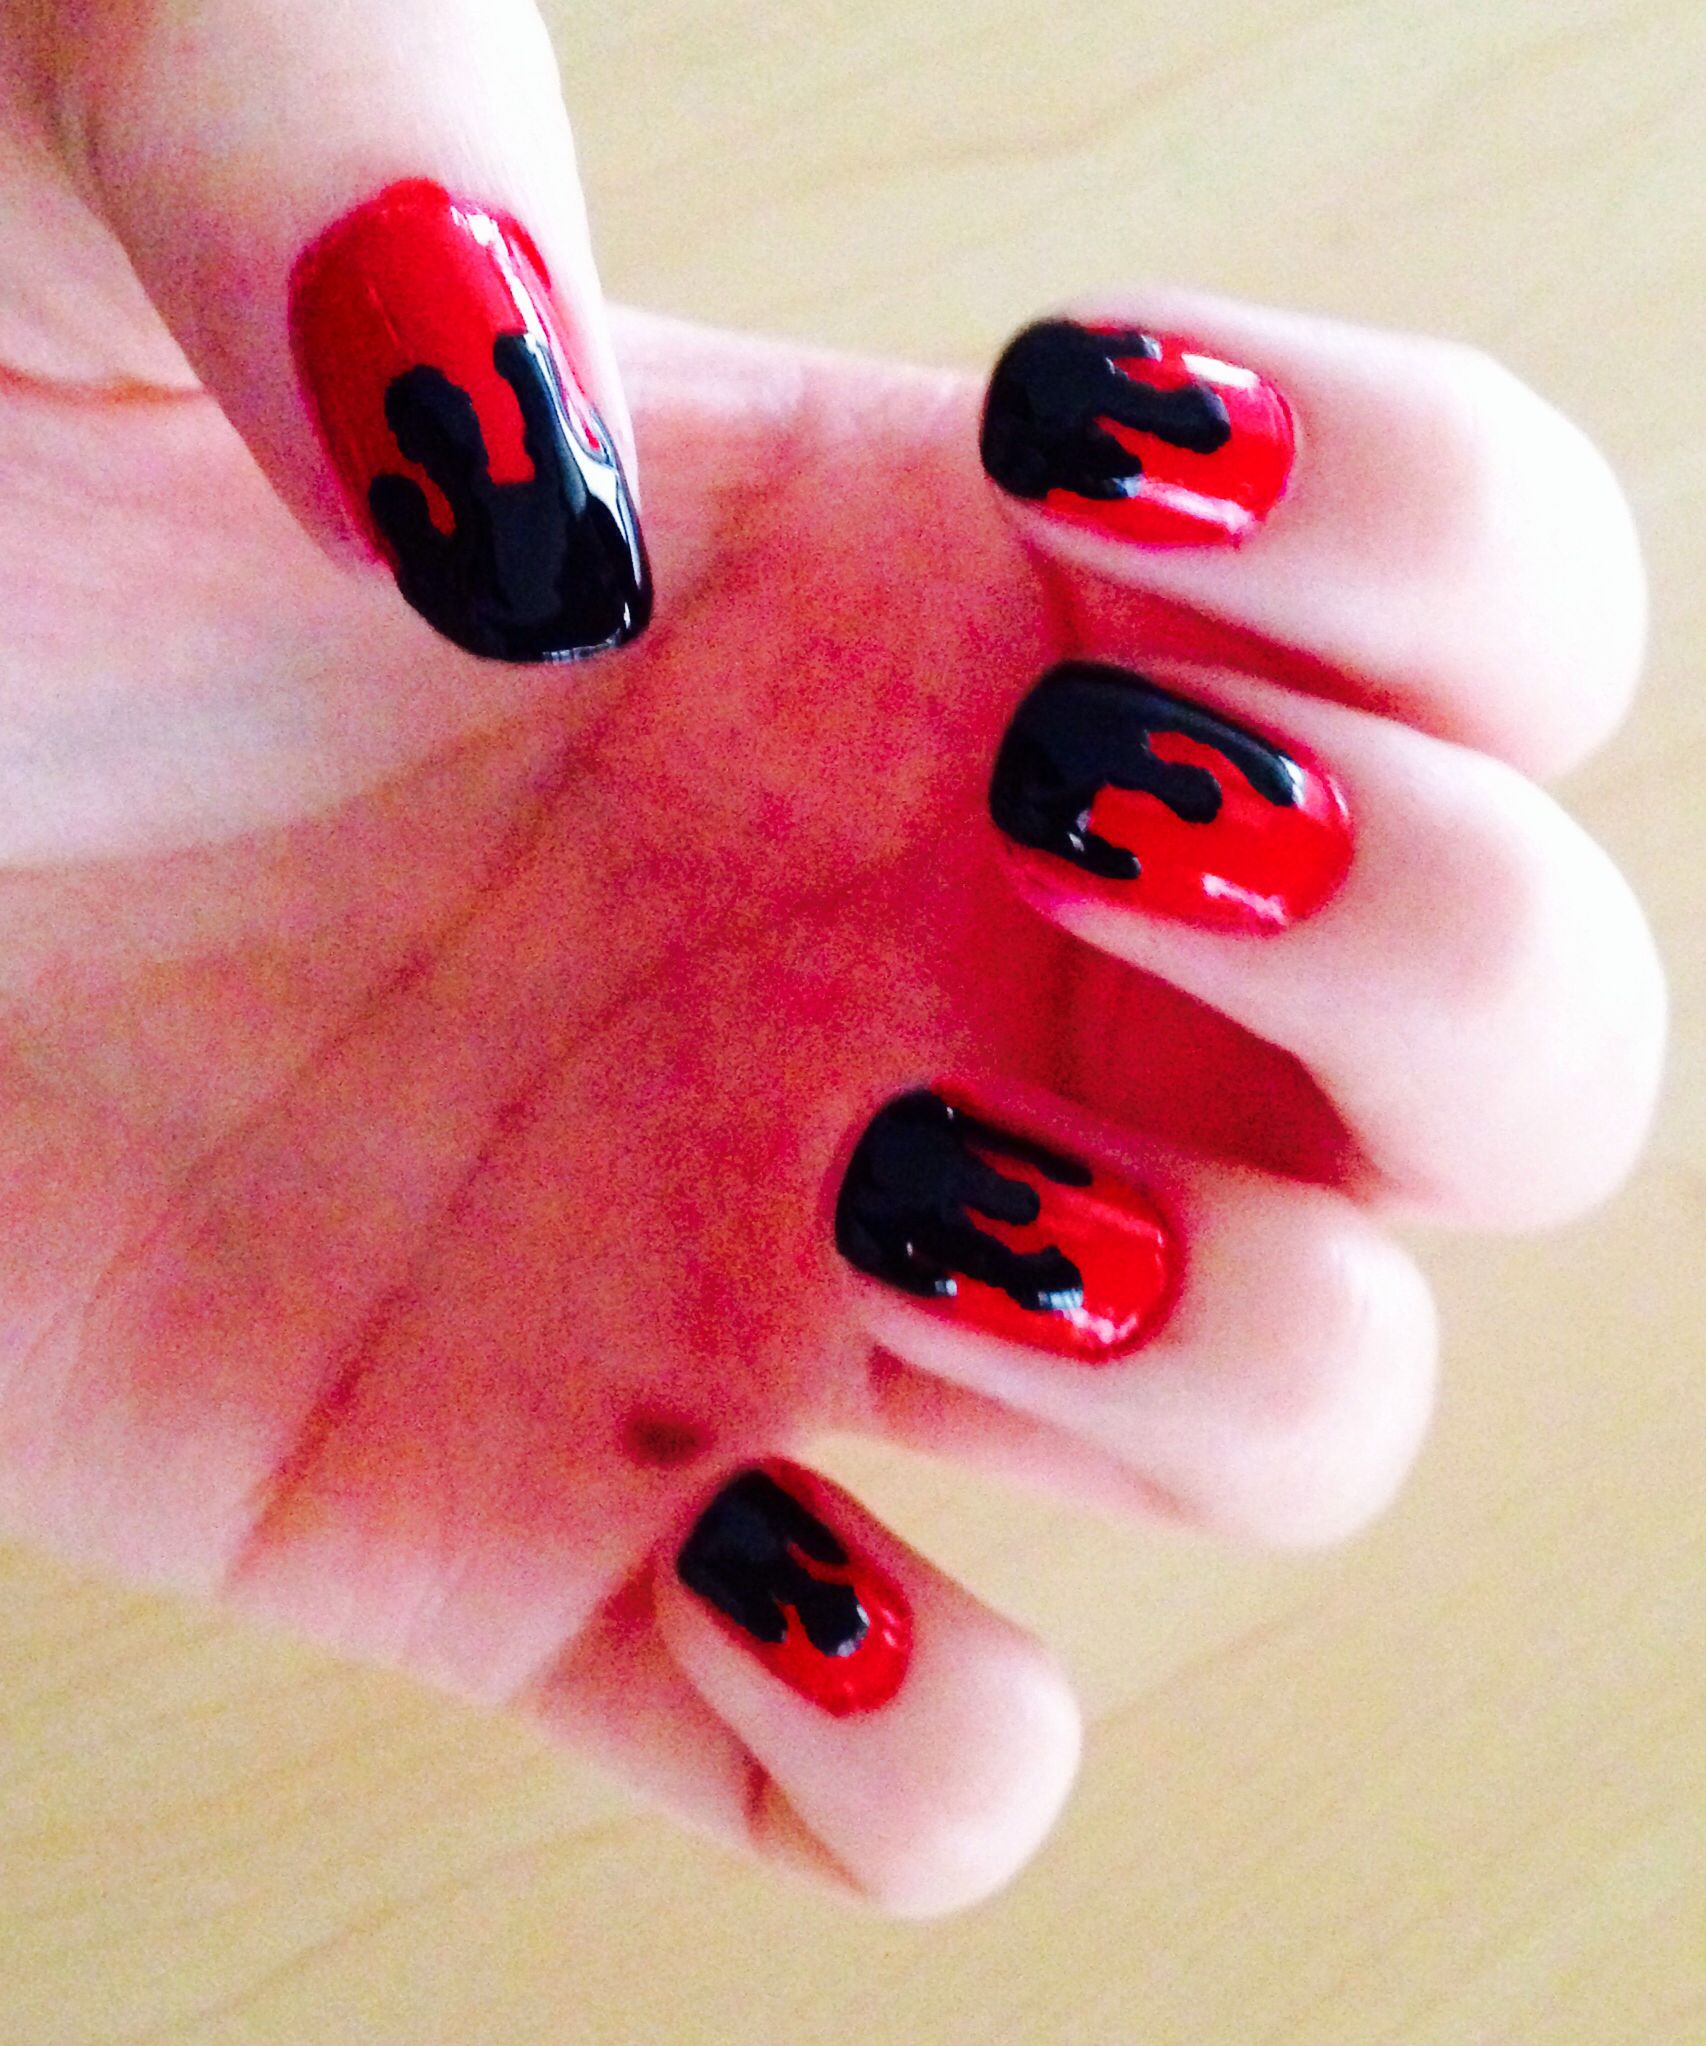 Emo nails #nail art #back #red | nails | Pinterest